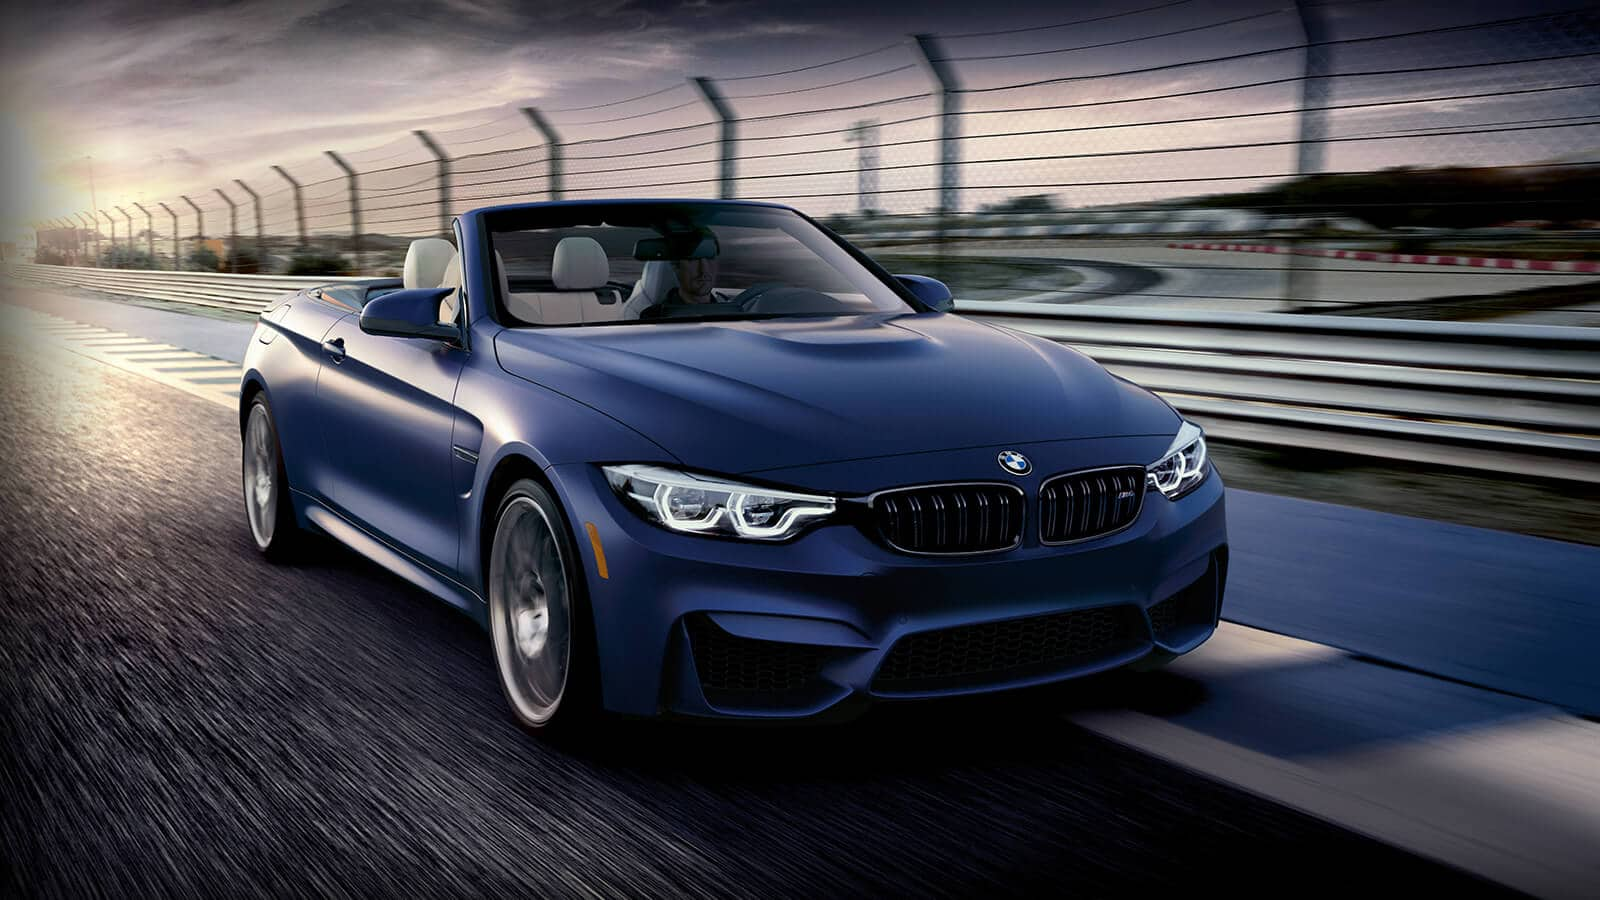 2020 BMW M4 for Sale in Jackson, MS